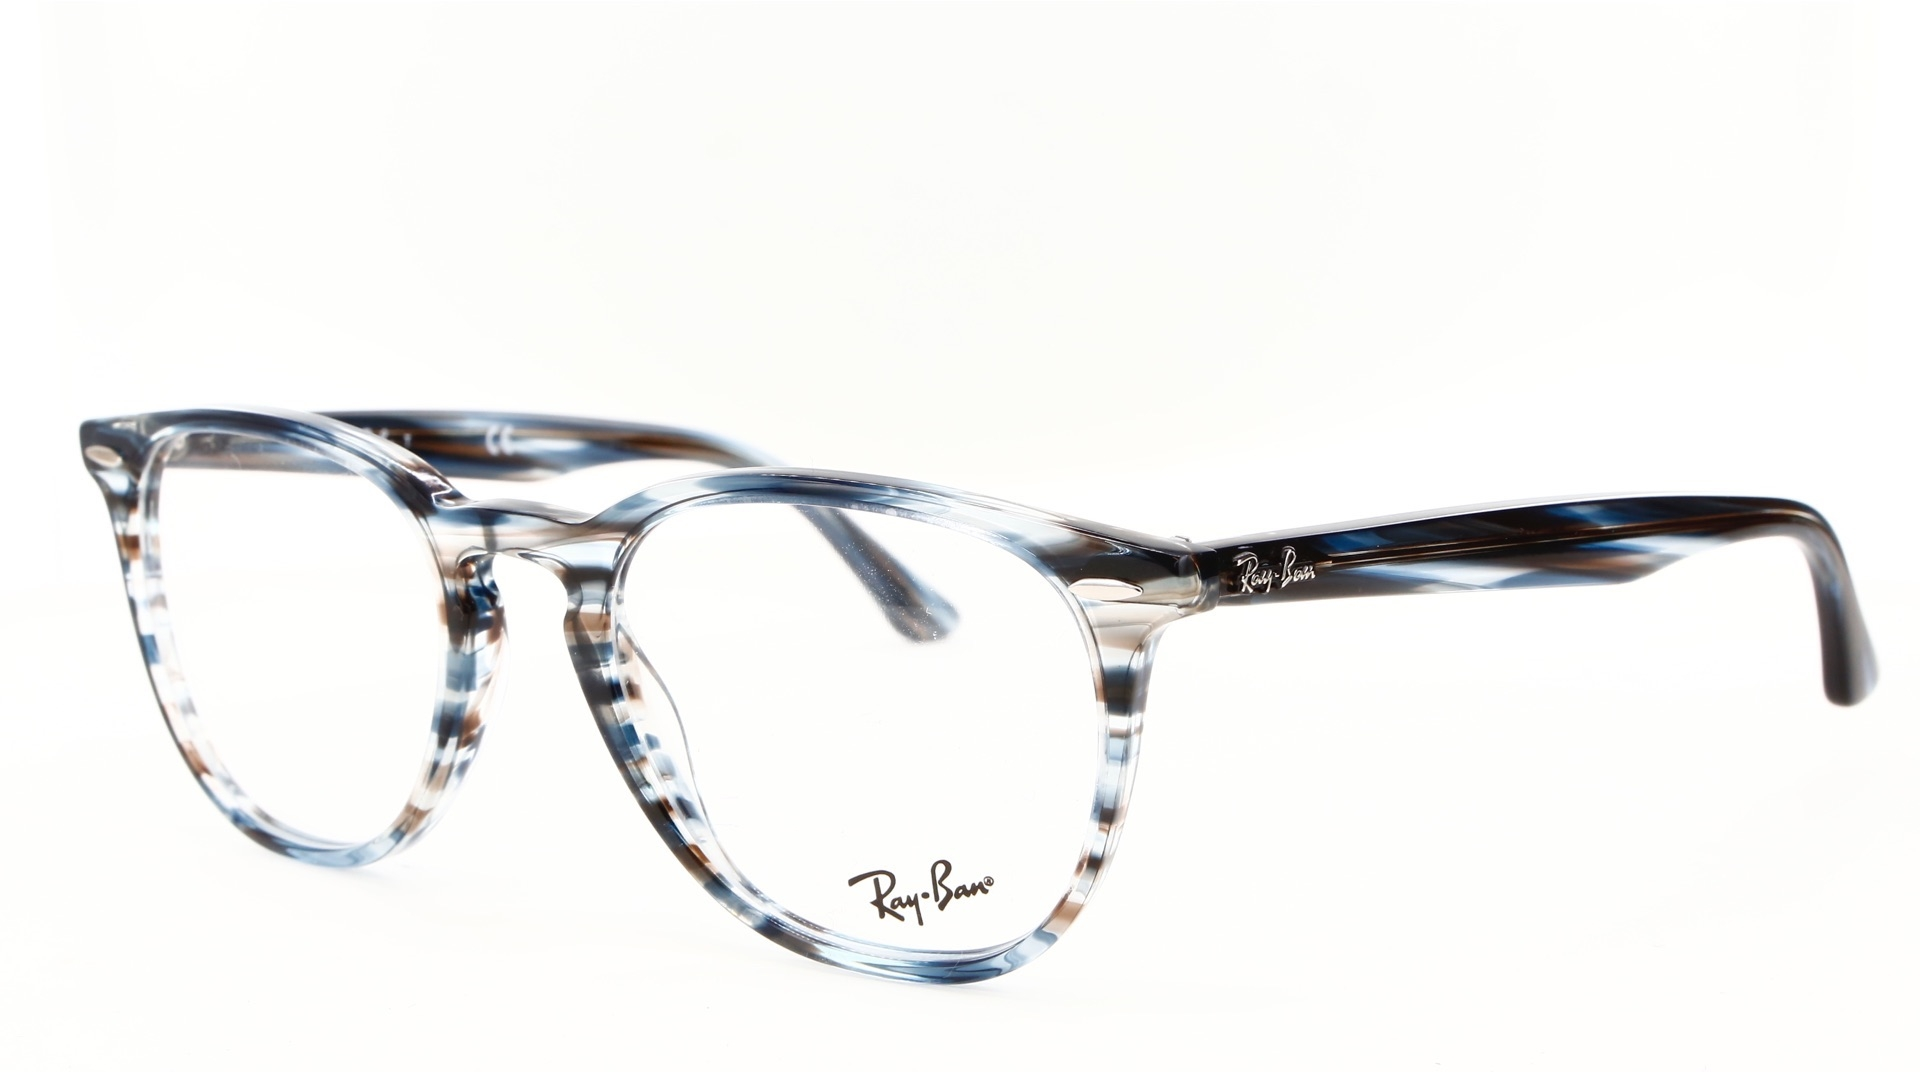 Ray-Ban - ref: 78761